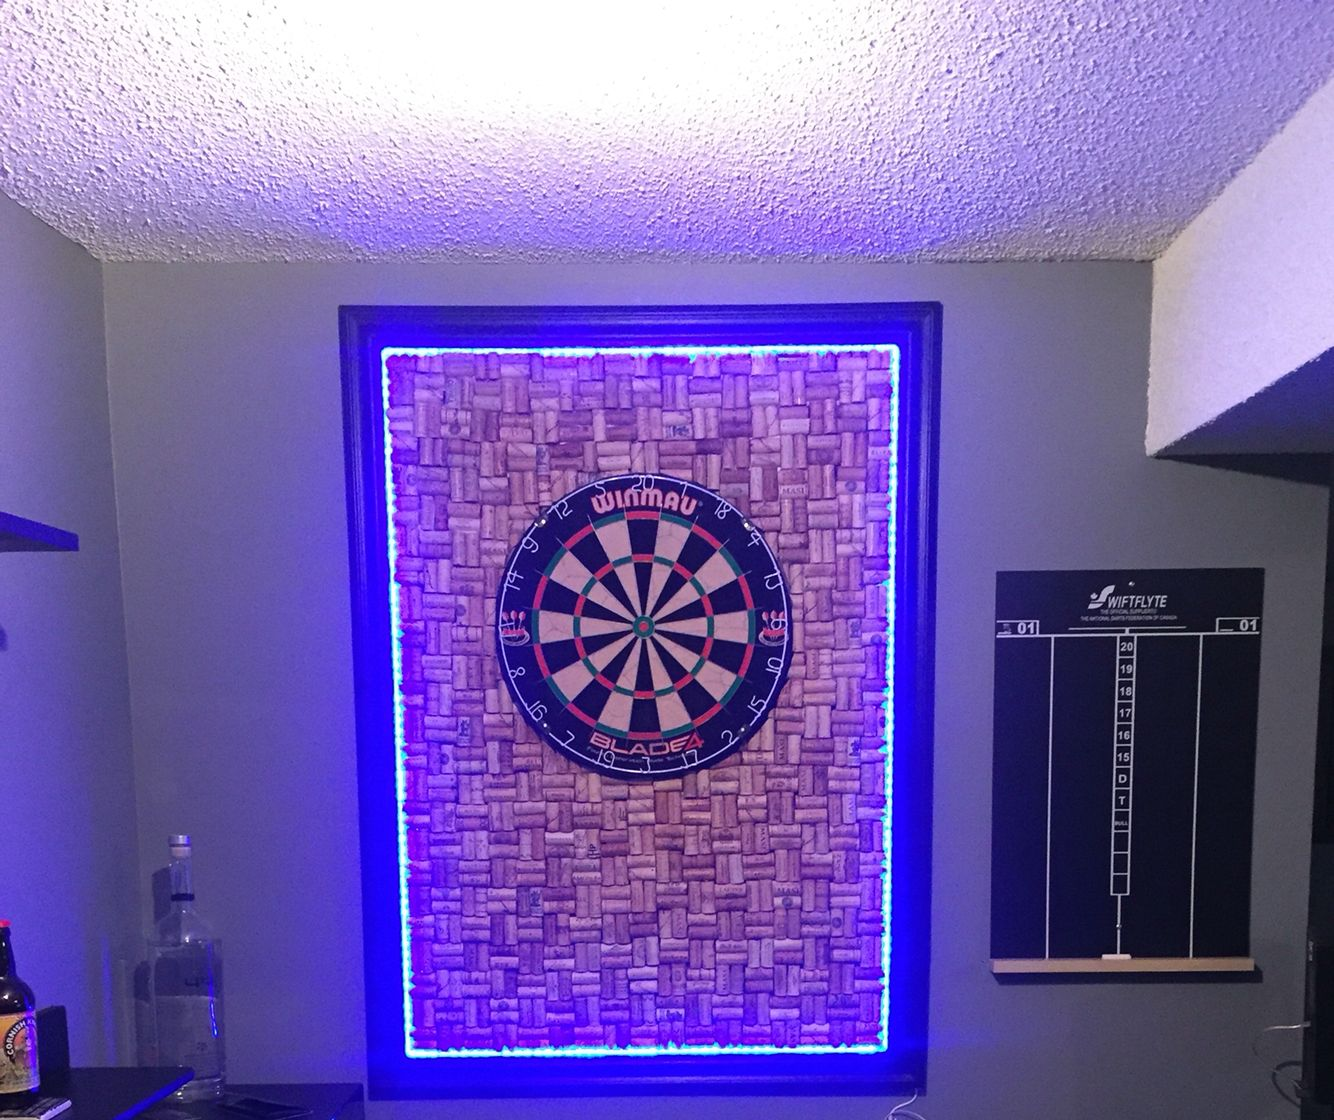 The hubby finally finished his latest ManCave project. It turned out amazing!! Dartboard with cork backing and LED lights that change colour.